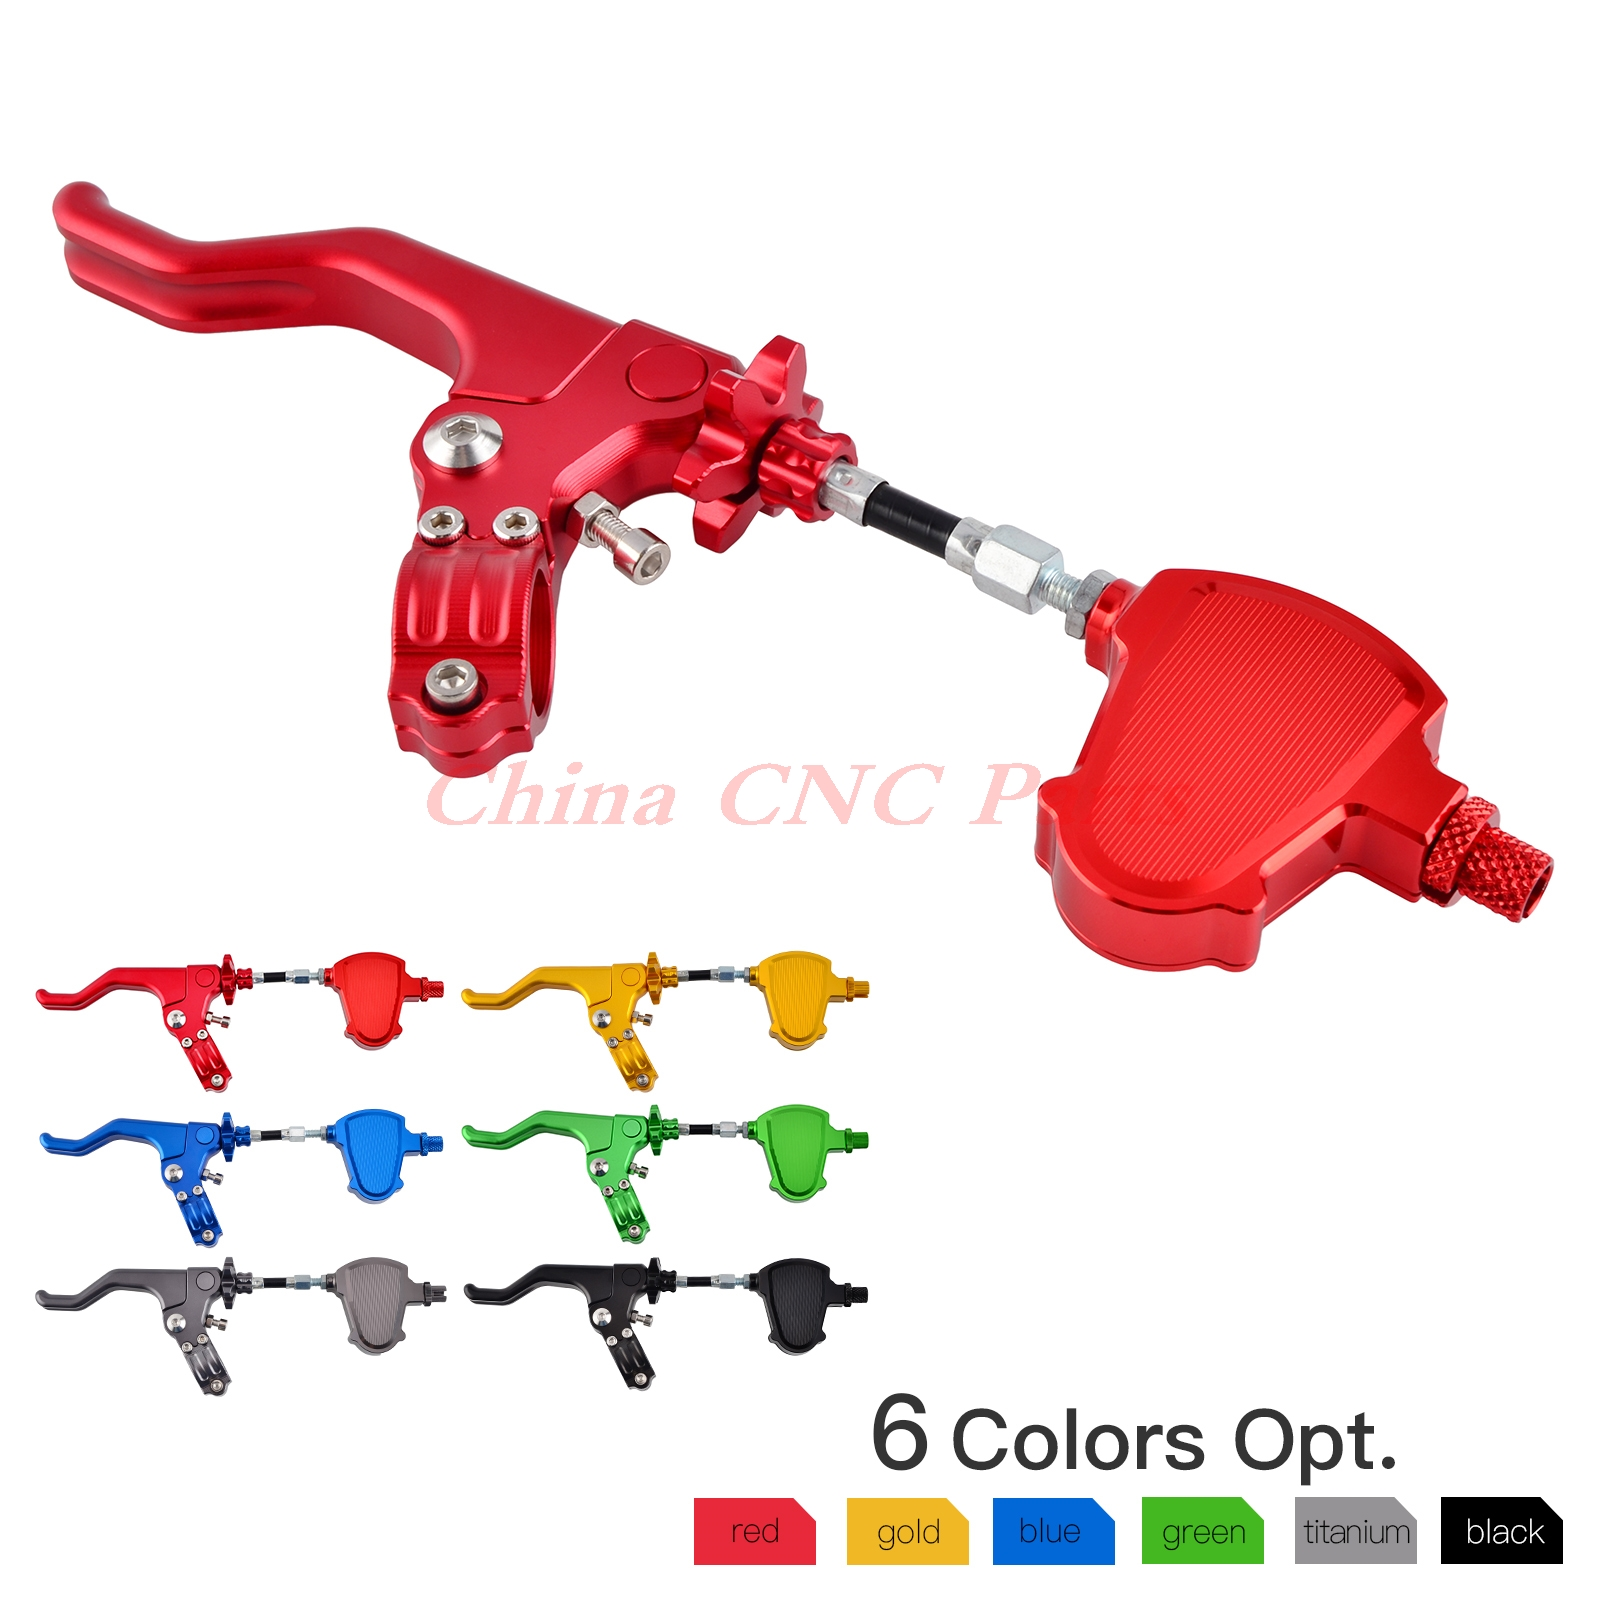 NICECNC Stunt Clutch Pull Cable Lever Replacement Easy System For Honda CRF250R 450R CRF230F 250L/M CBR600RR CB600F NC750 NC700 special dvb t mpeg4 tv box tuners for ownice car dvd player the item just for our dvd